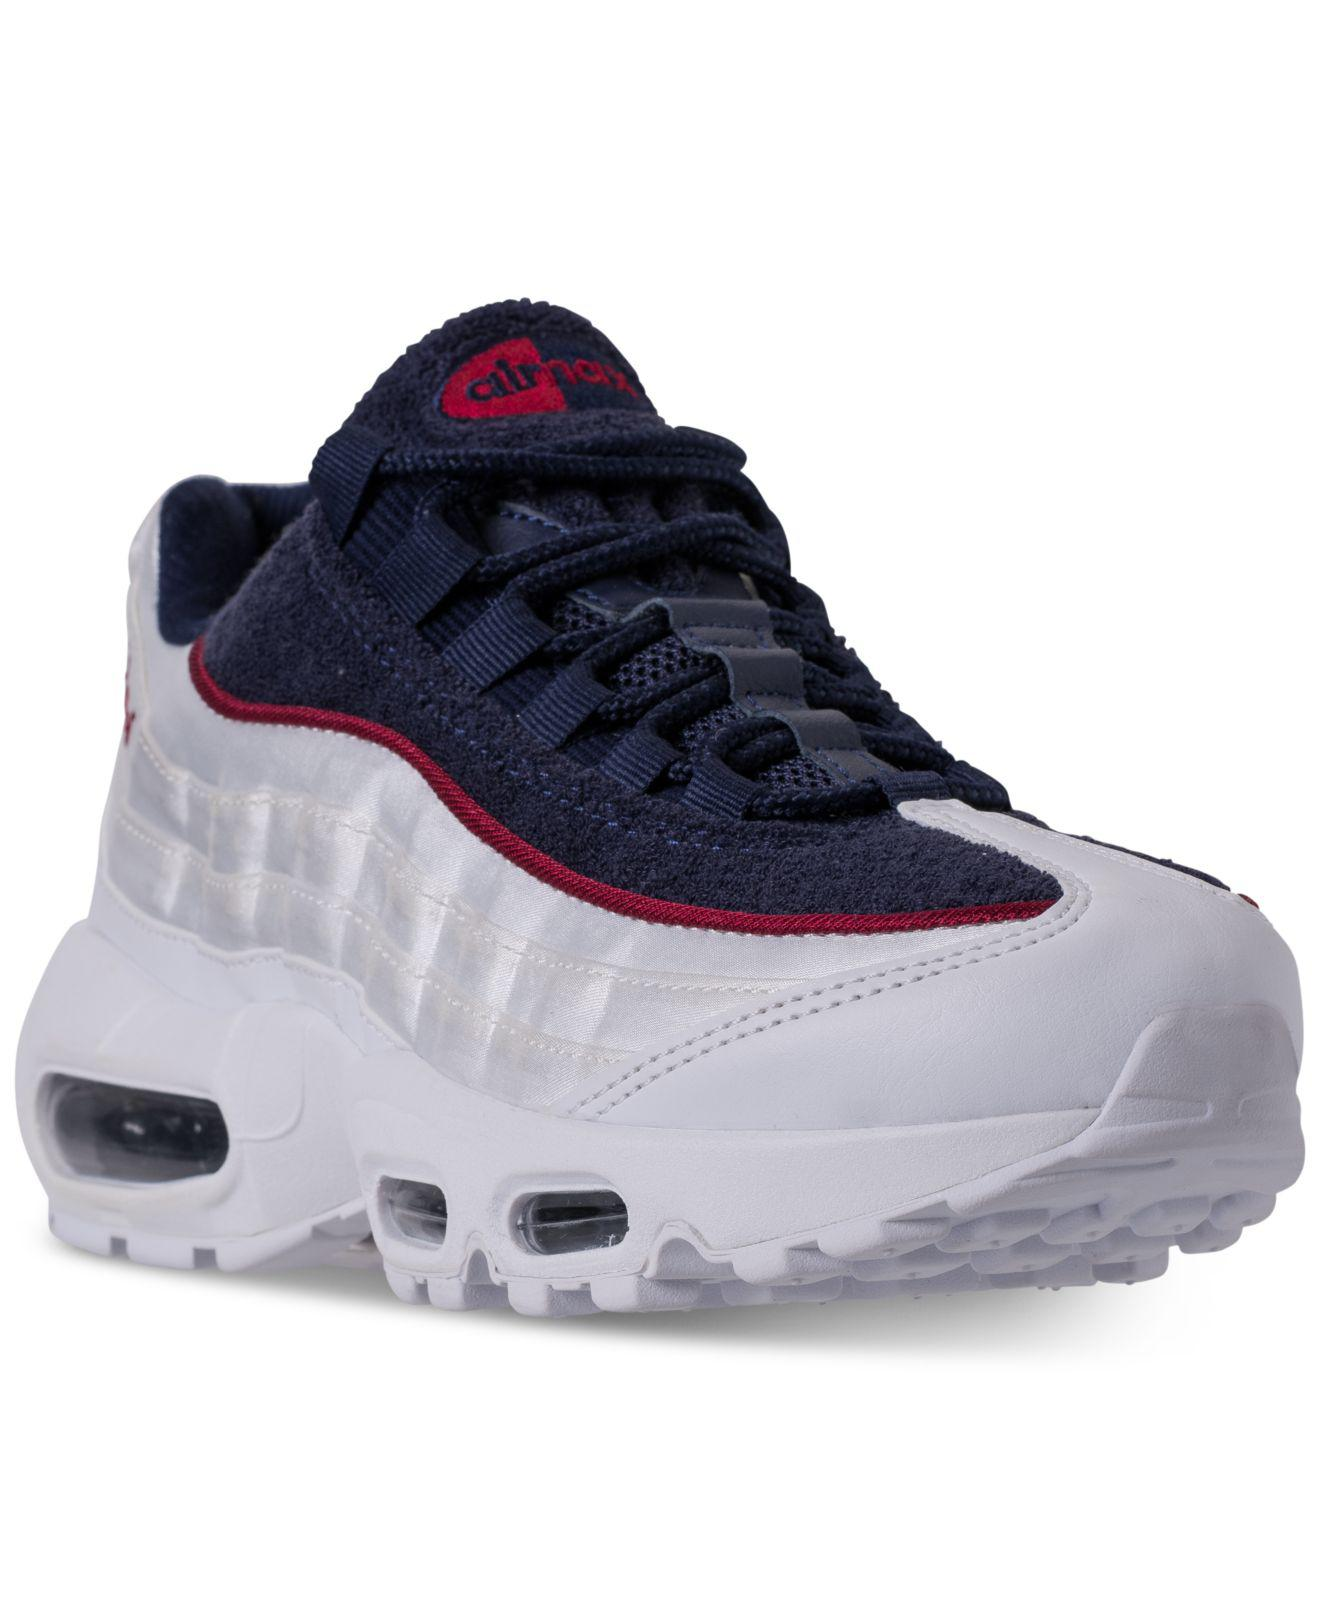 Lyst - Nike Air Max 95 Lx Casual Sneakers From Finish Line in White f7efd2866